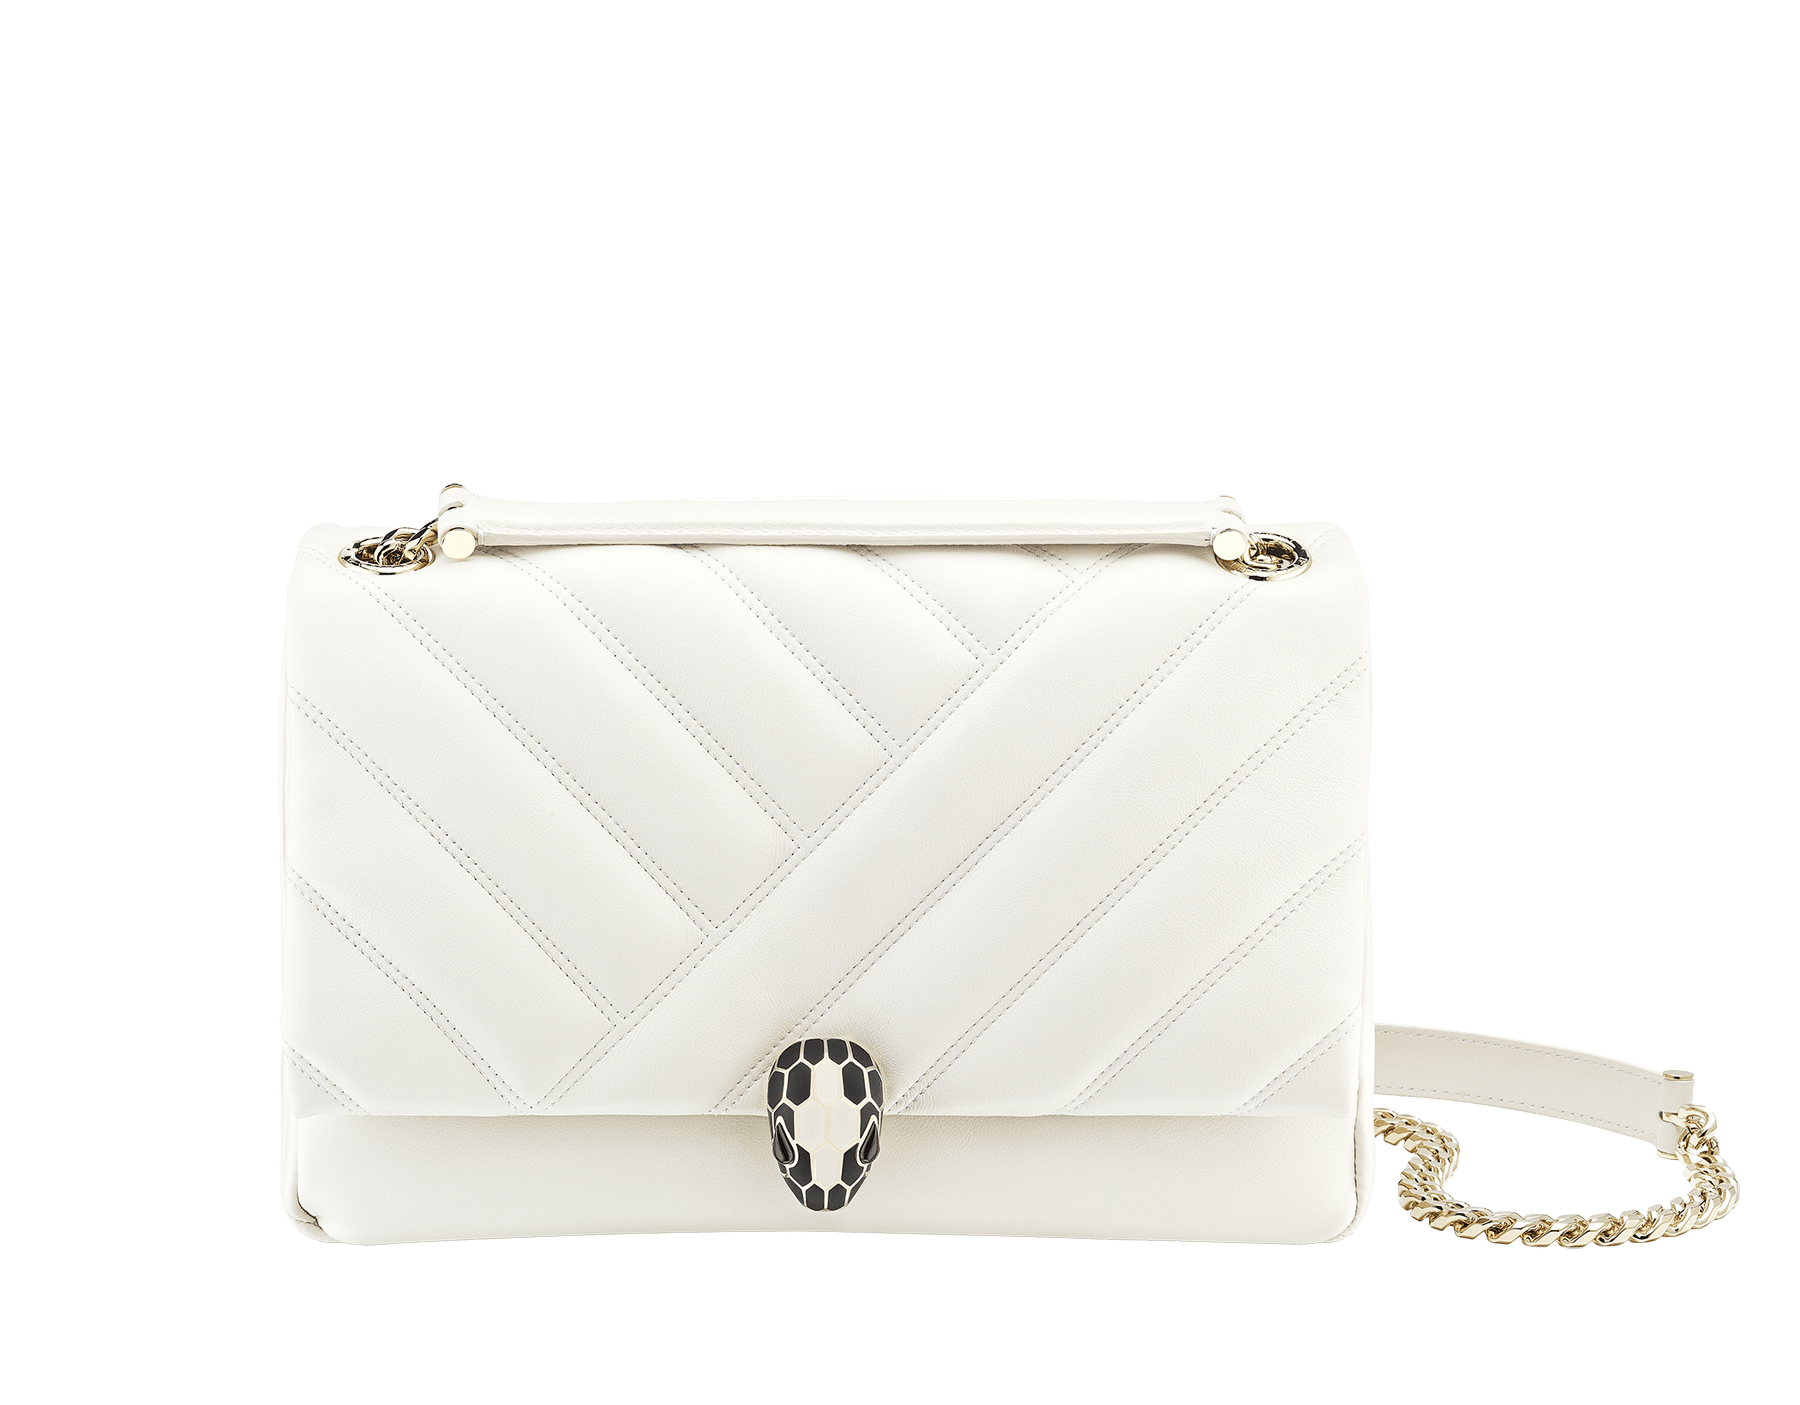 Serpenti Cabochon shoulder bag in soft matelassé white agate nappa leather with graphic motif and white agate calf leather. Snakehead closure in rose gold plated brass decorated with matte black and white enamel, and black onyx eyes. 979-NSM image 1